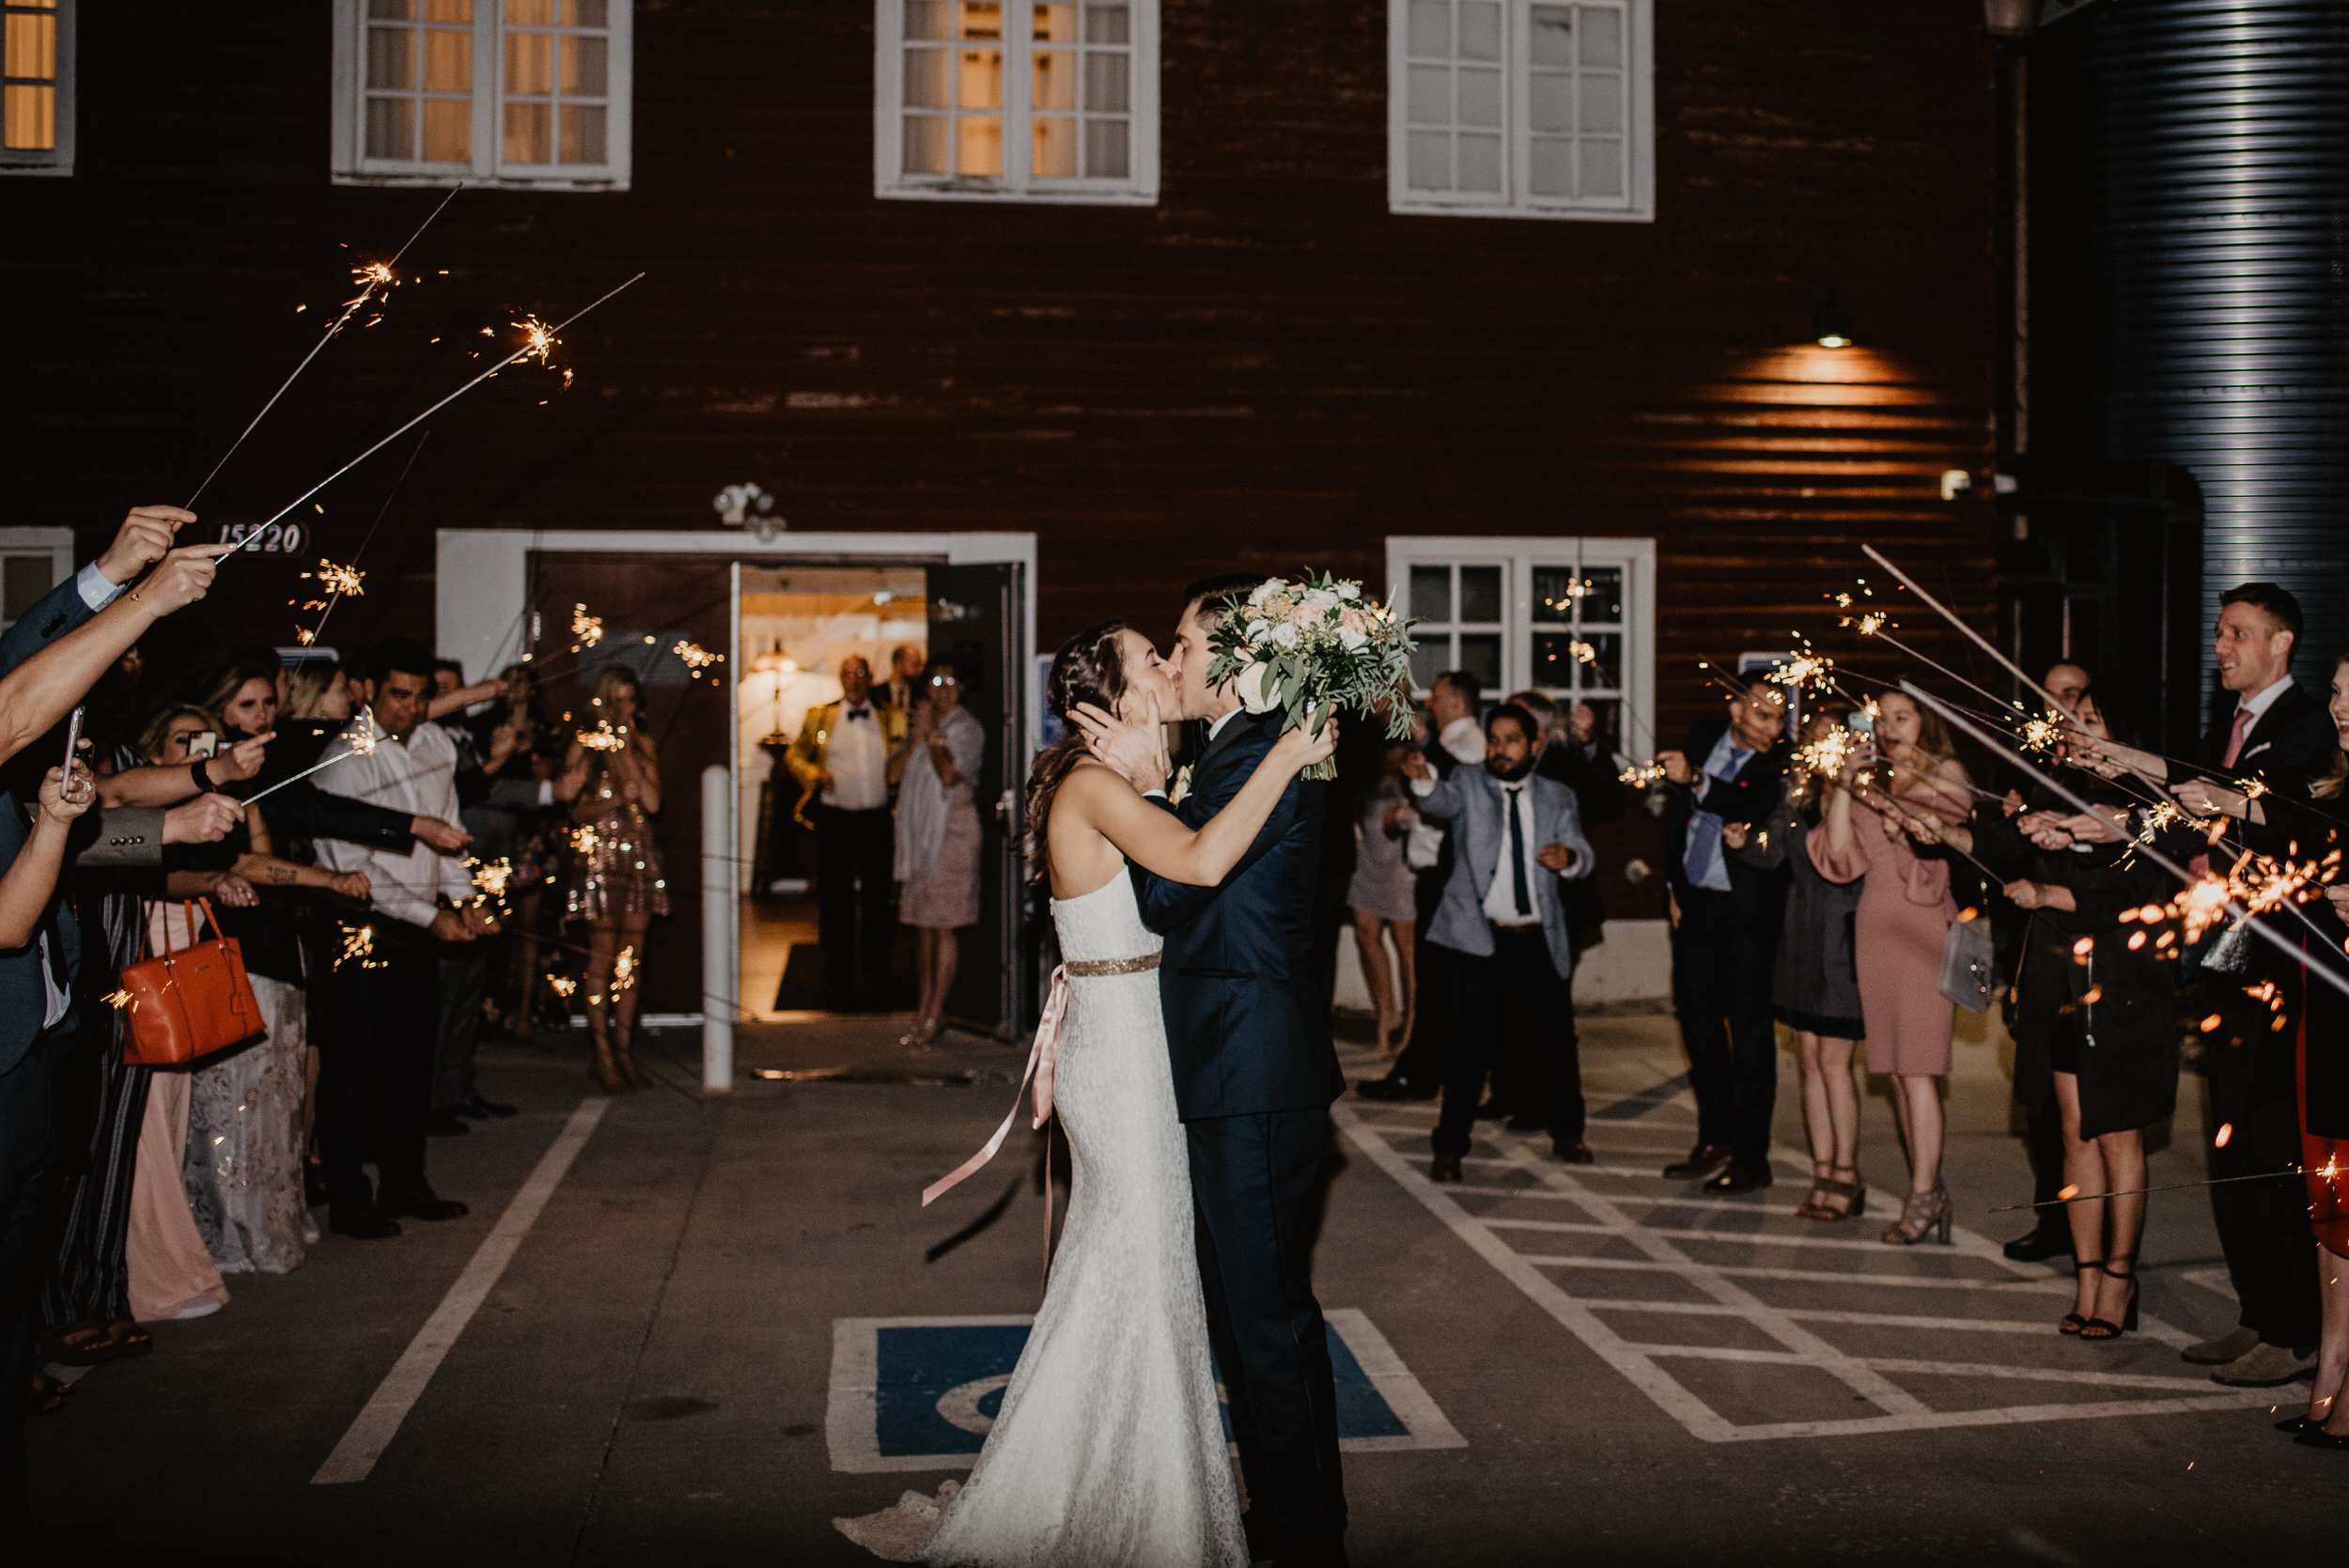 The Barn at the Ackerhurst Dairy Farm Omaha Nebraska Wedding Kaylie Sirek Photography139.jpg